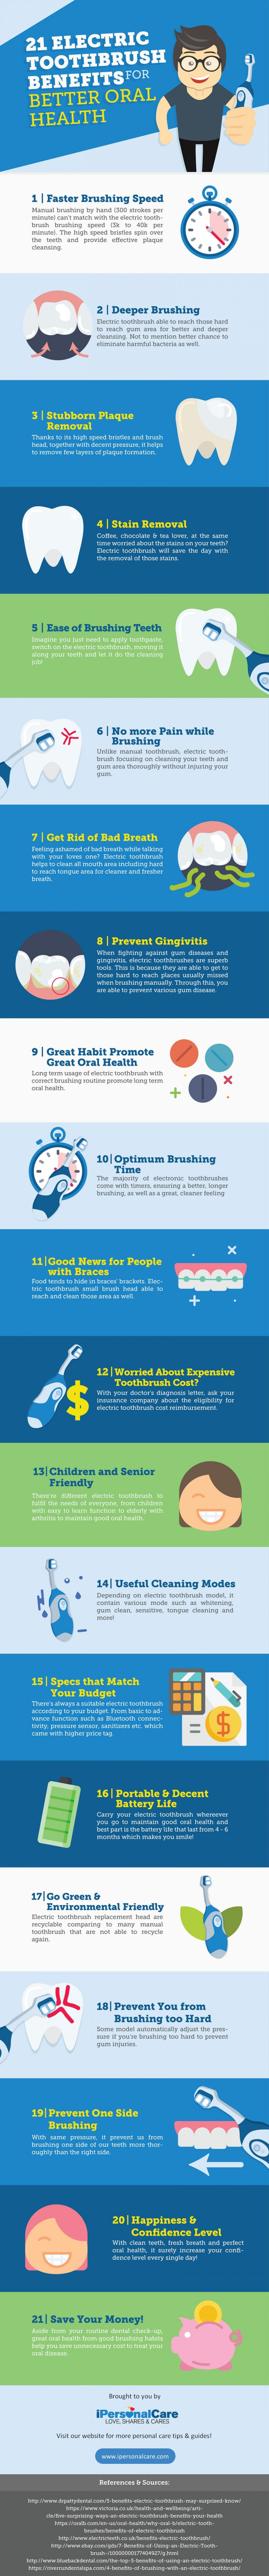 21 Electric Toothbrush Benefits for Better Dental Health Infographic